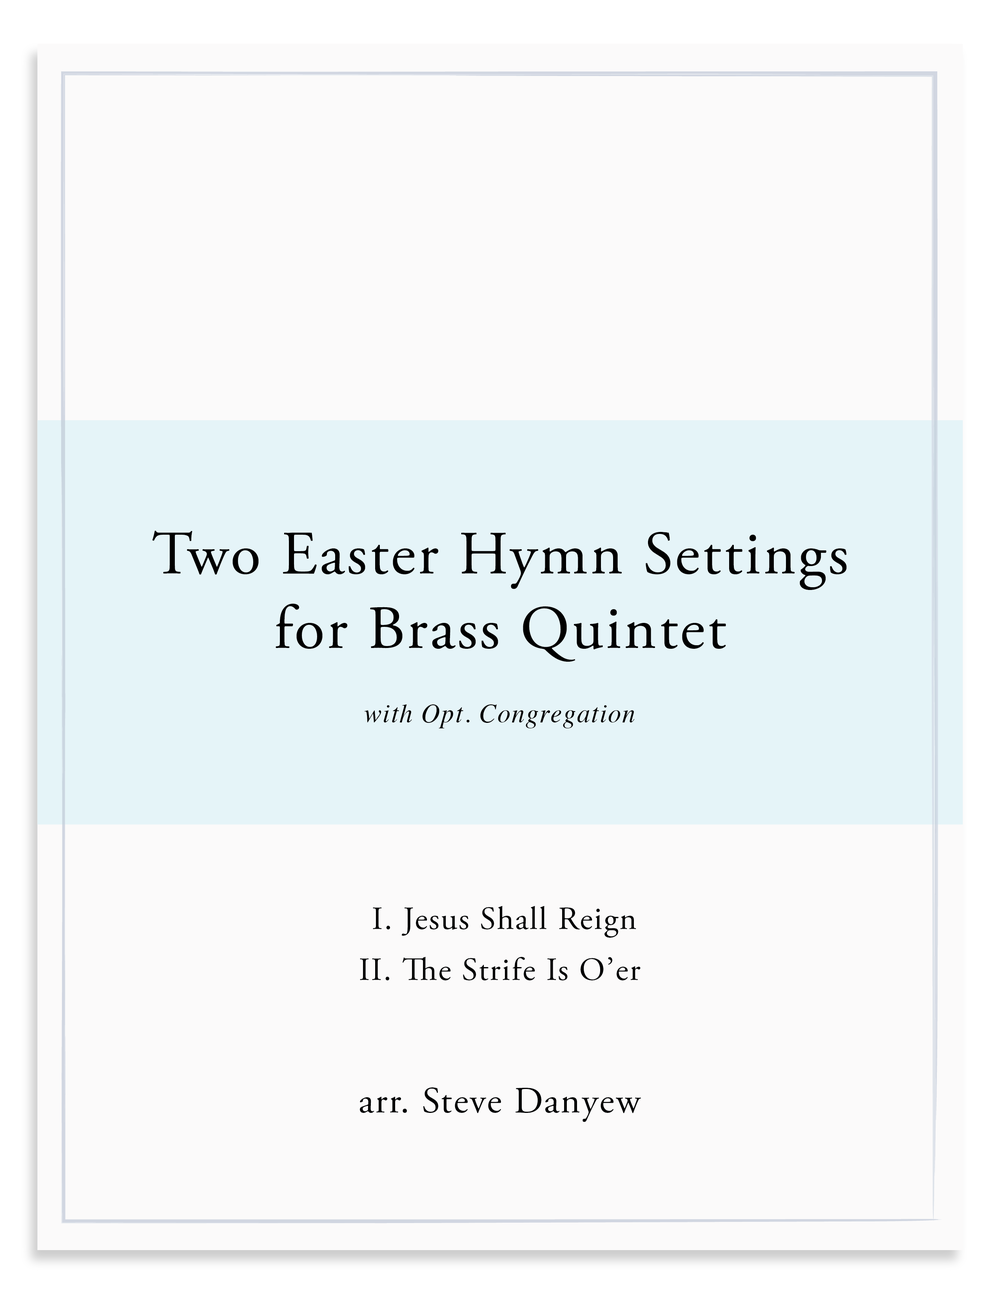 Two Easter Hymn Settings for Brass Quintet_Steve Danyew.png